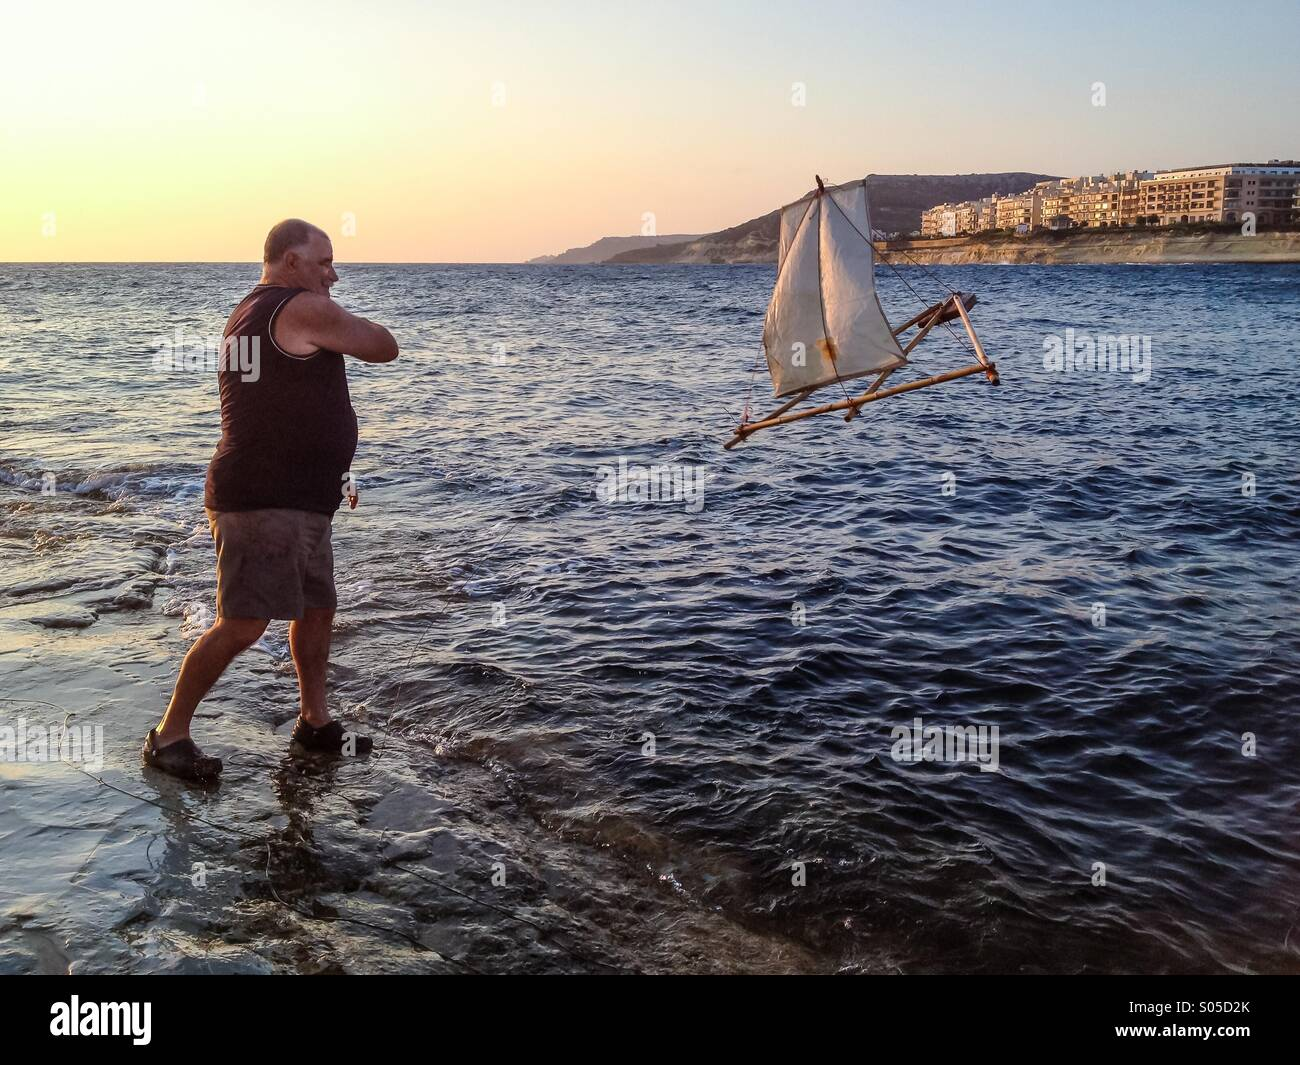 Fisherman launching longline float and sail at dawn - Stock Image